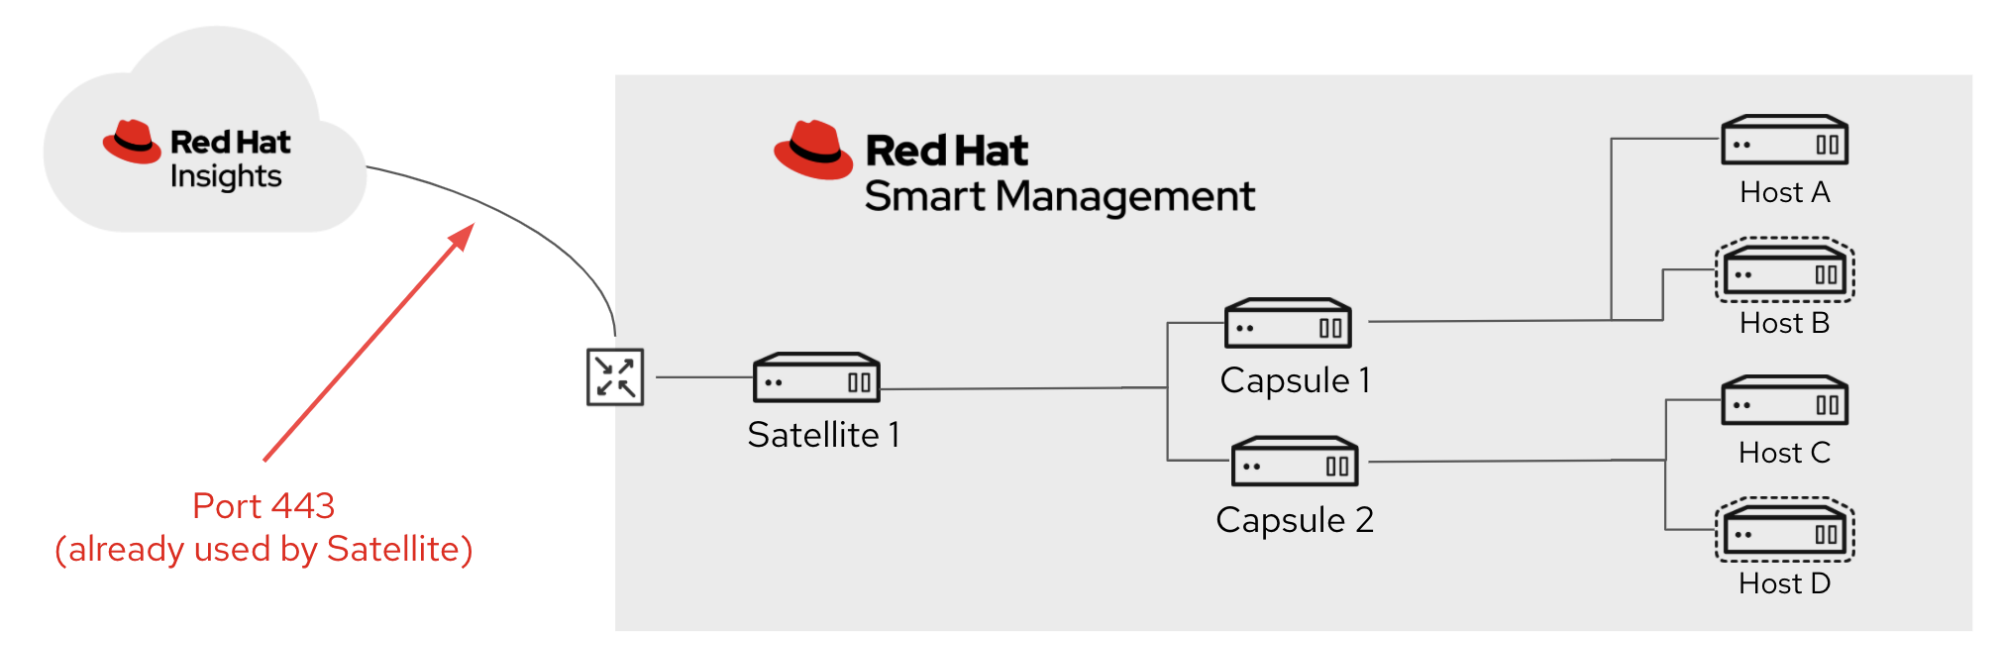 Red Hat Smart Management diagram